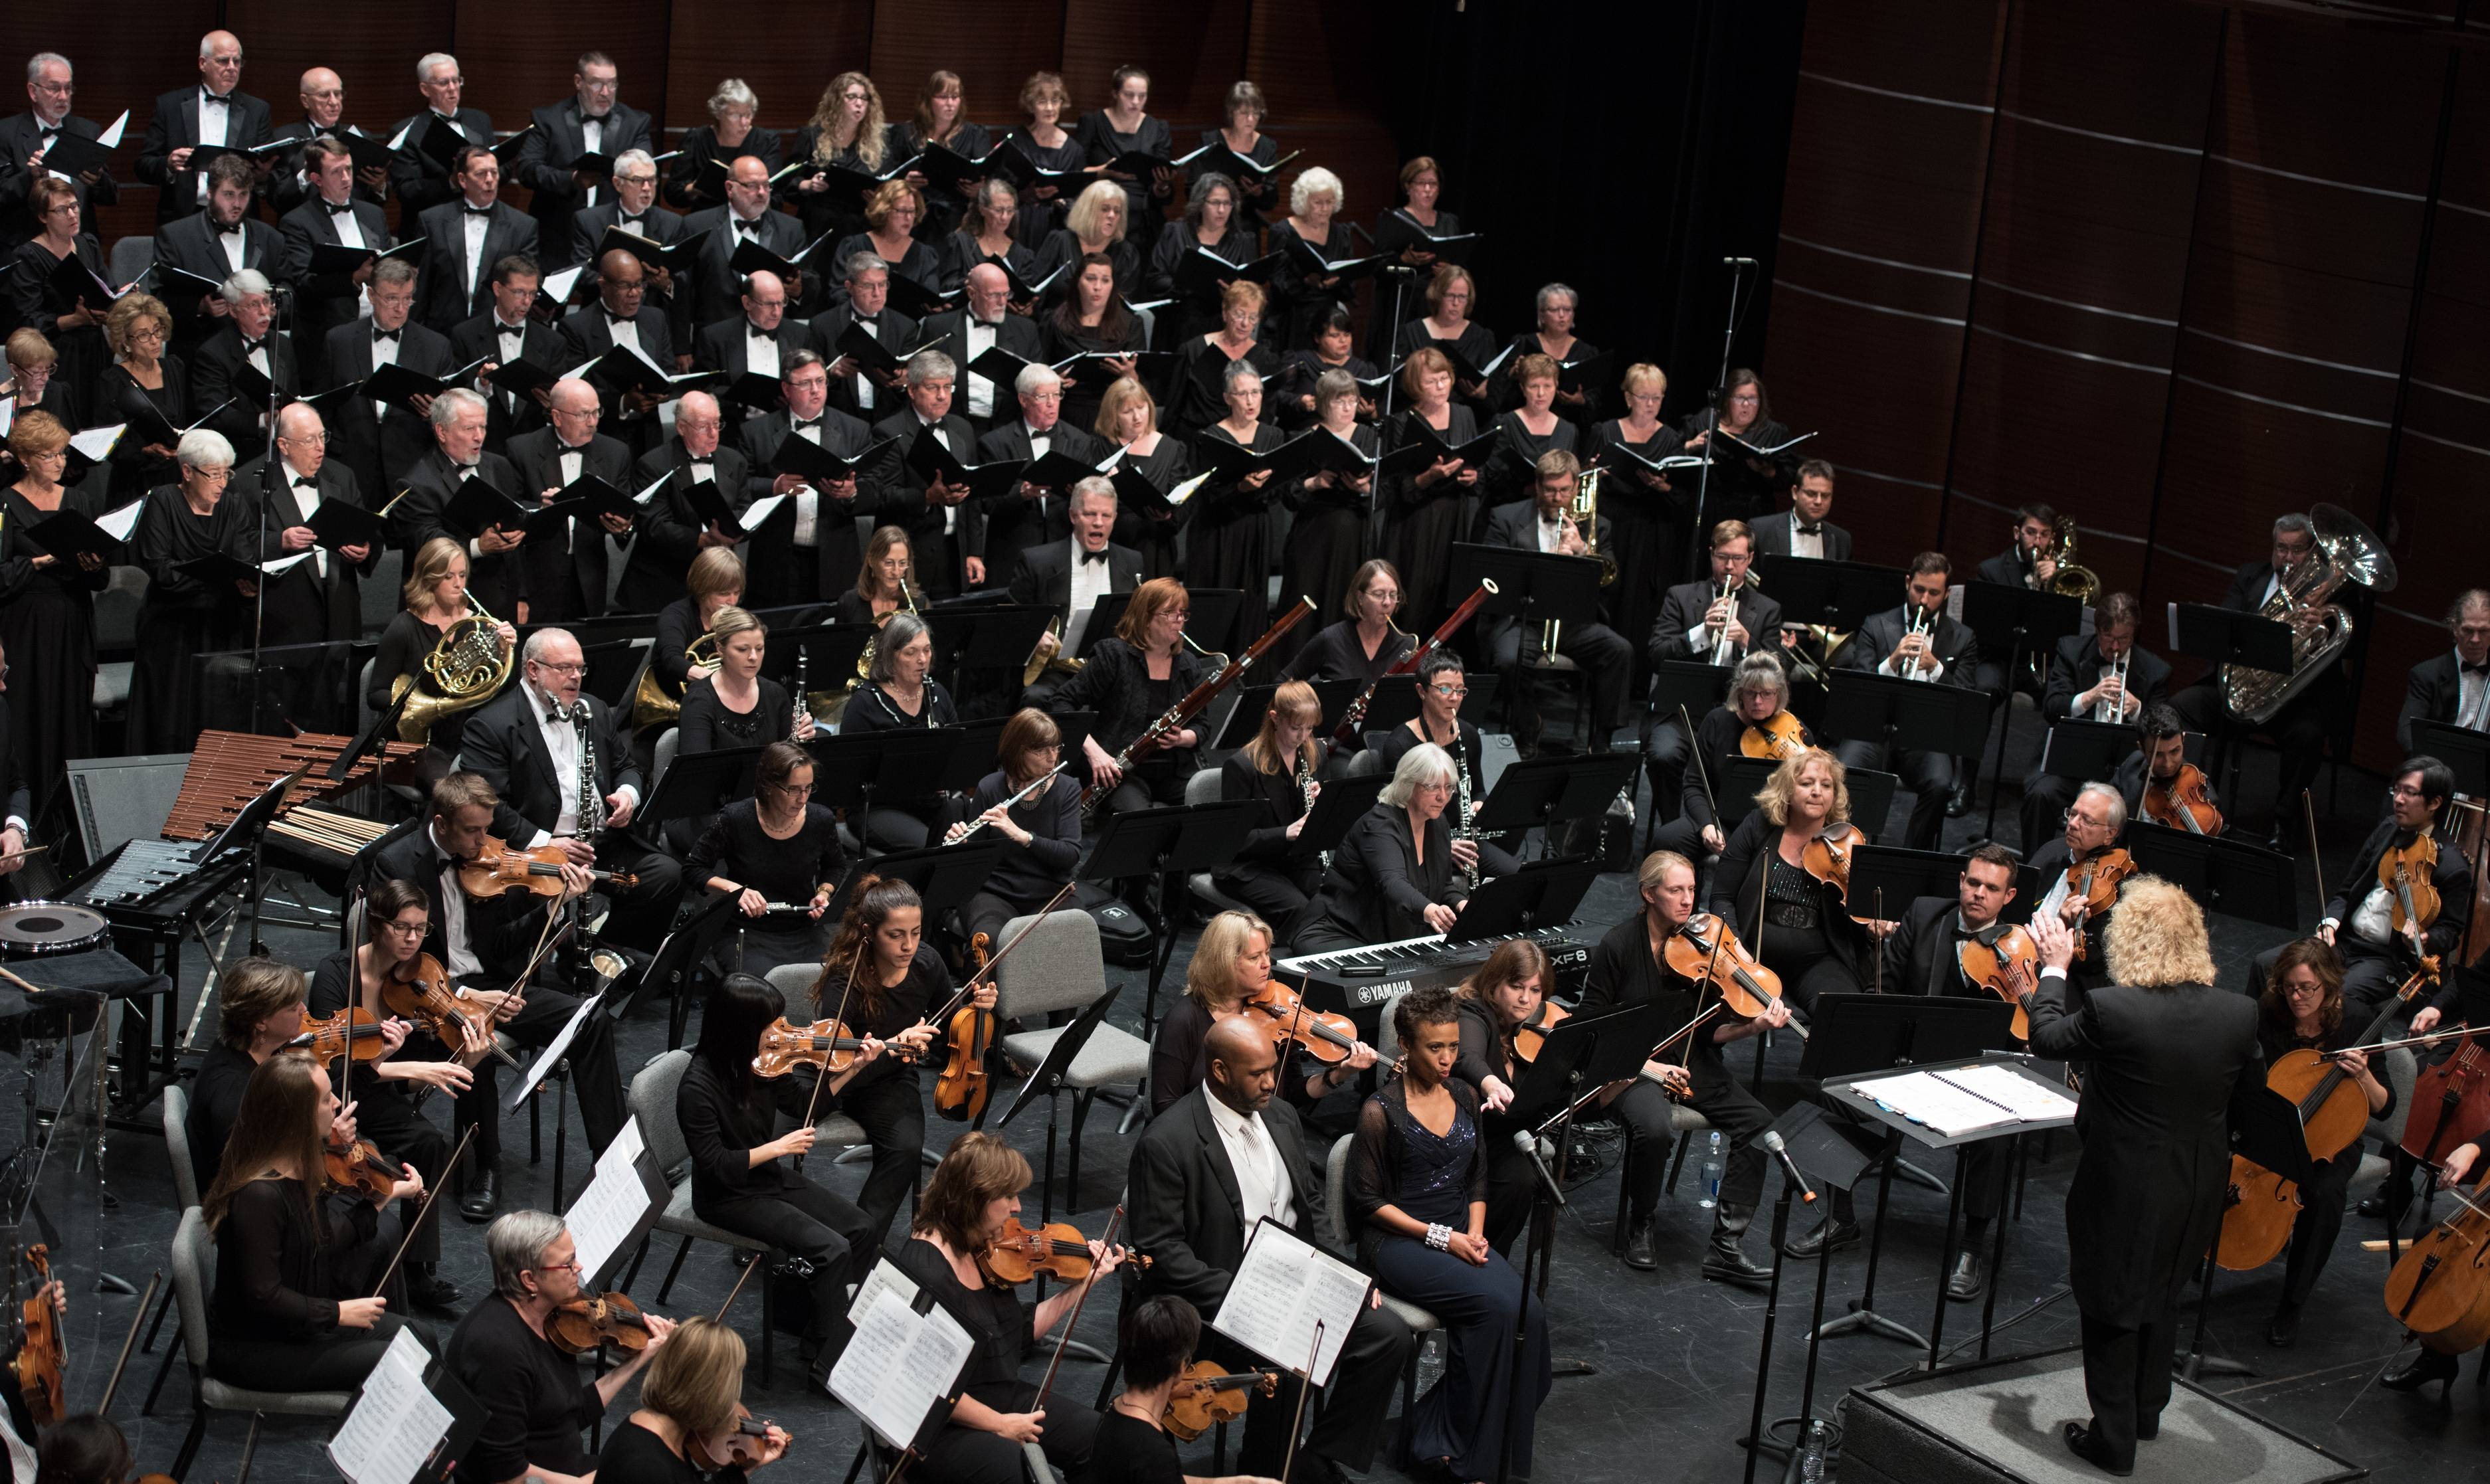 """Show Boat & Show Tunes"" will take place at 3 p.m. and 7:30 p.m. on Saturday, September 29 and at 3 p.m. on Sunday, September 30 at McAninch Arts Center on the grounds of College of DuPage in Glen Ellyn.Courtesy of New Philharmonic"